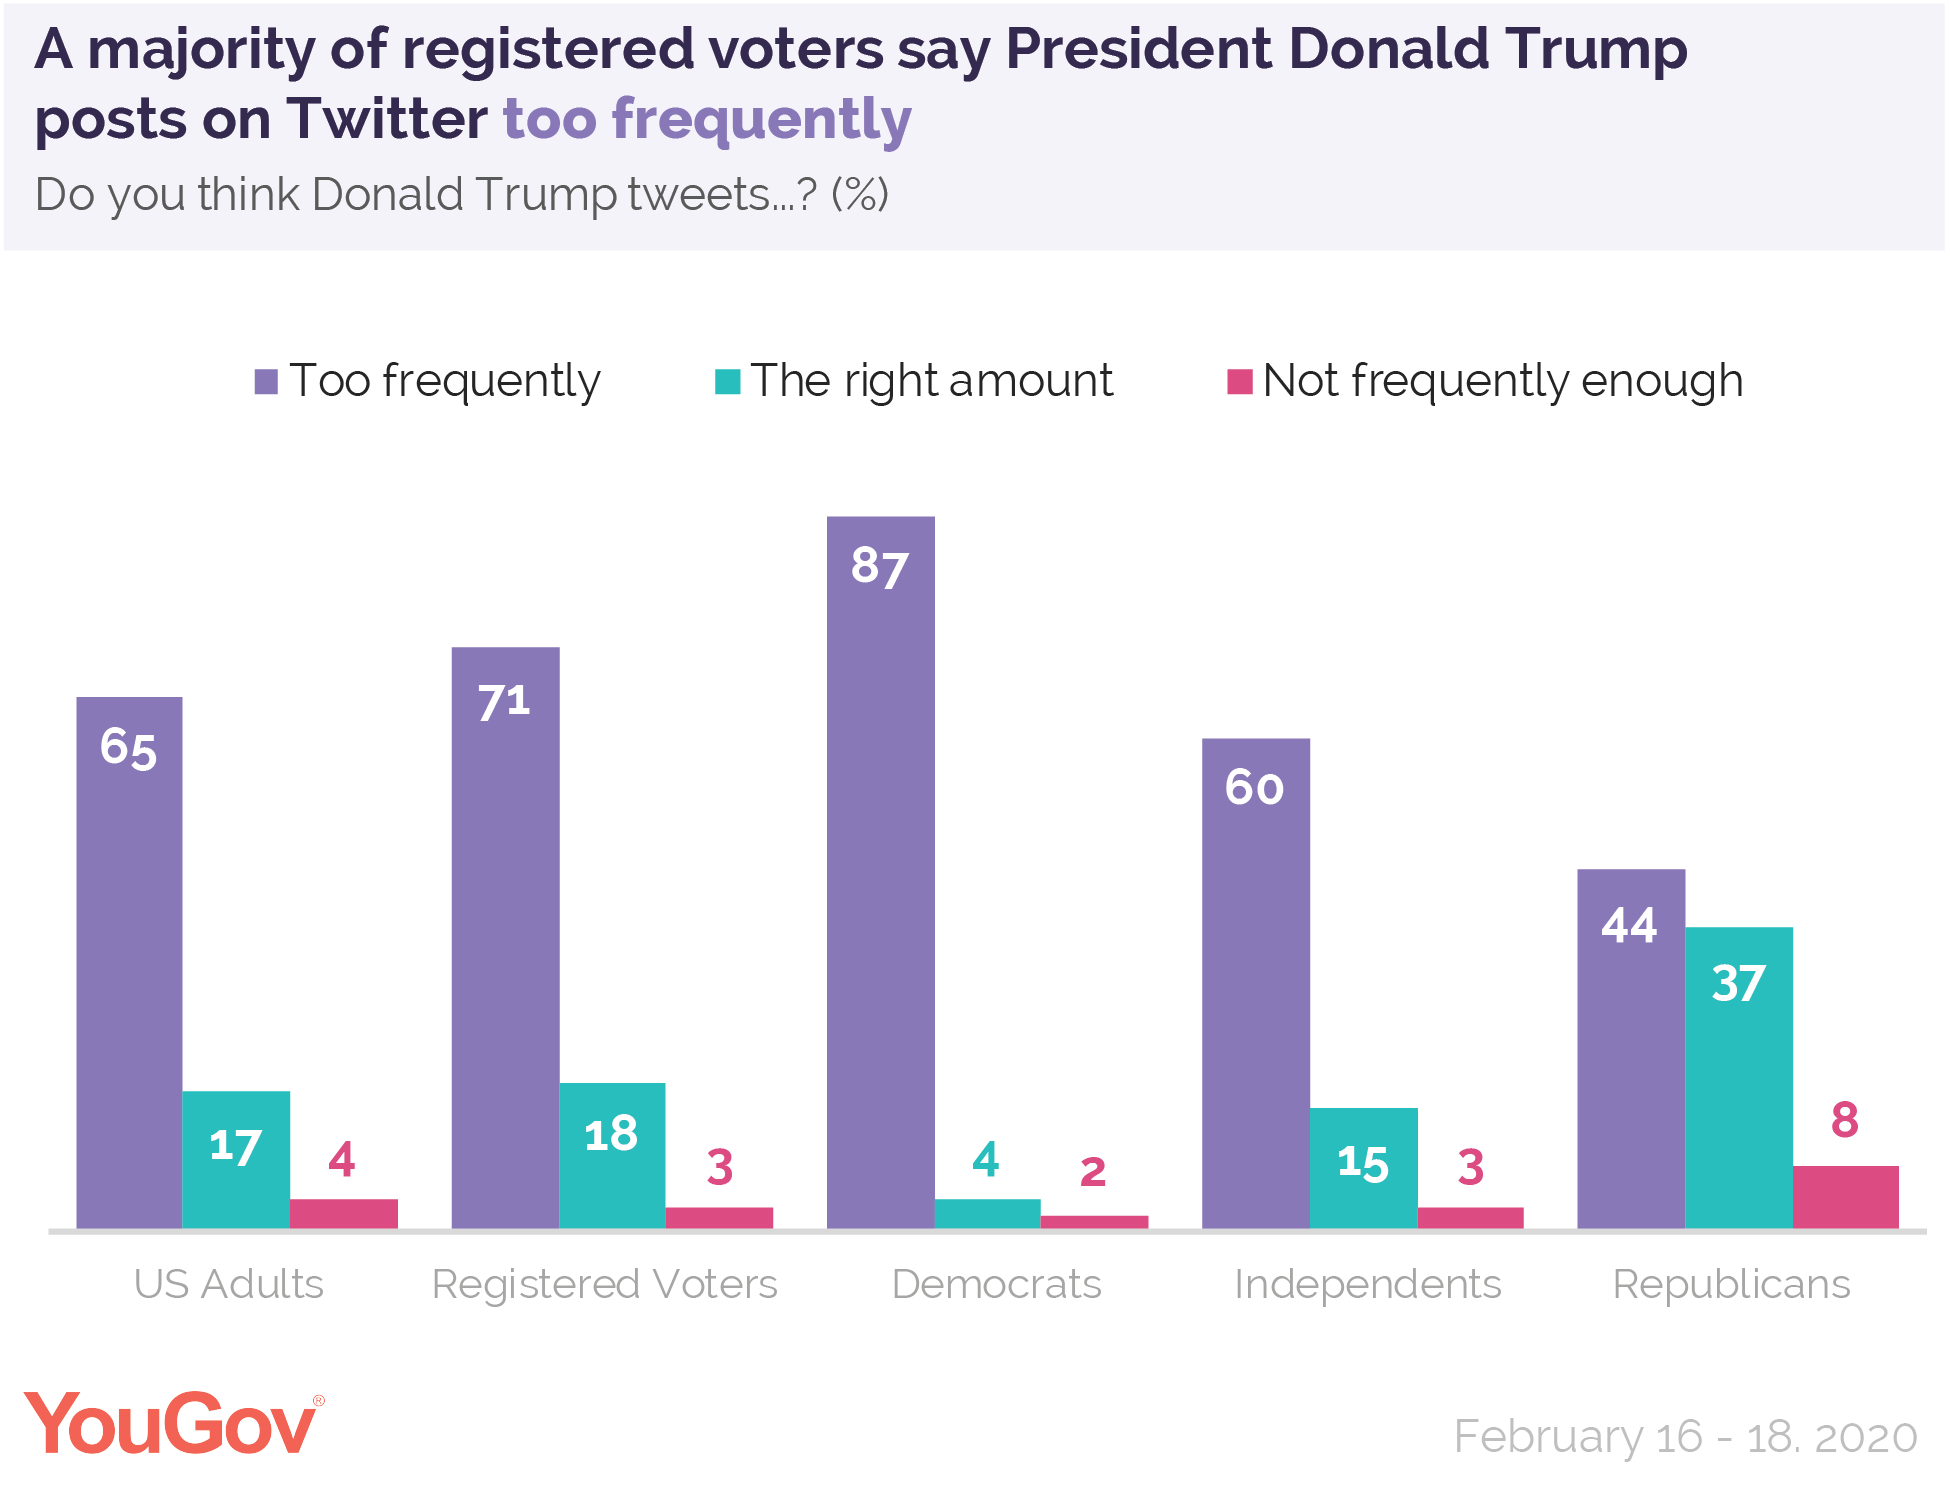 A majority of registered voters say President Donald Trump posts on Twitter too frequently